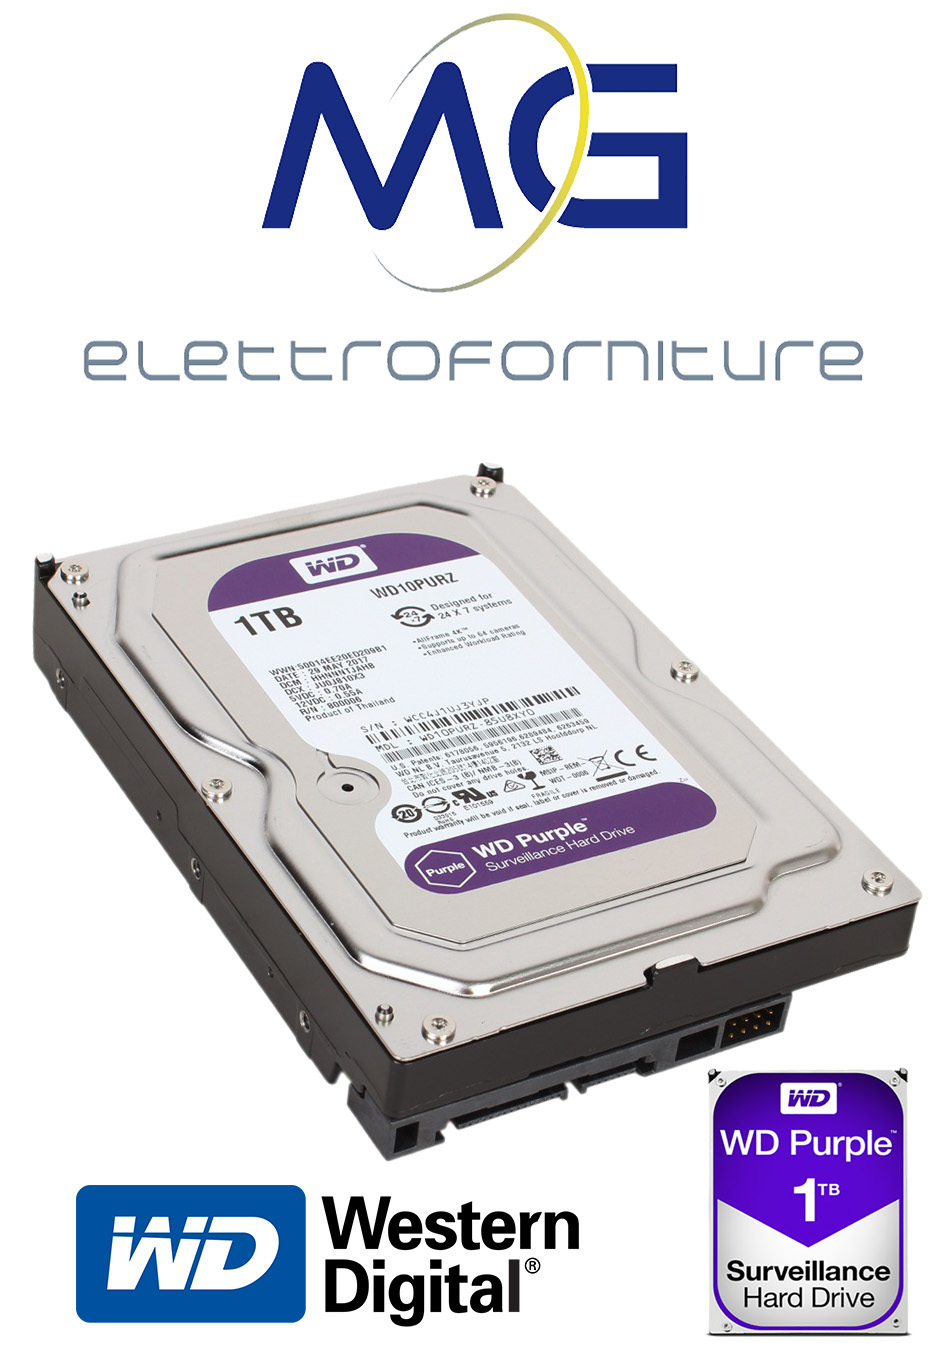 wd-hd-wd10purz-mgelettroforniture